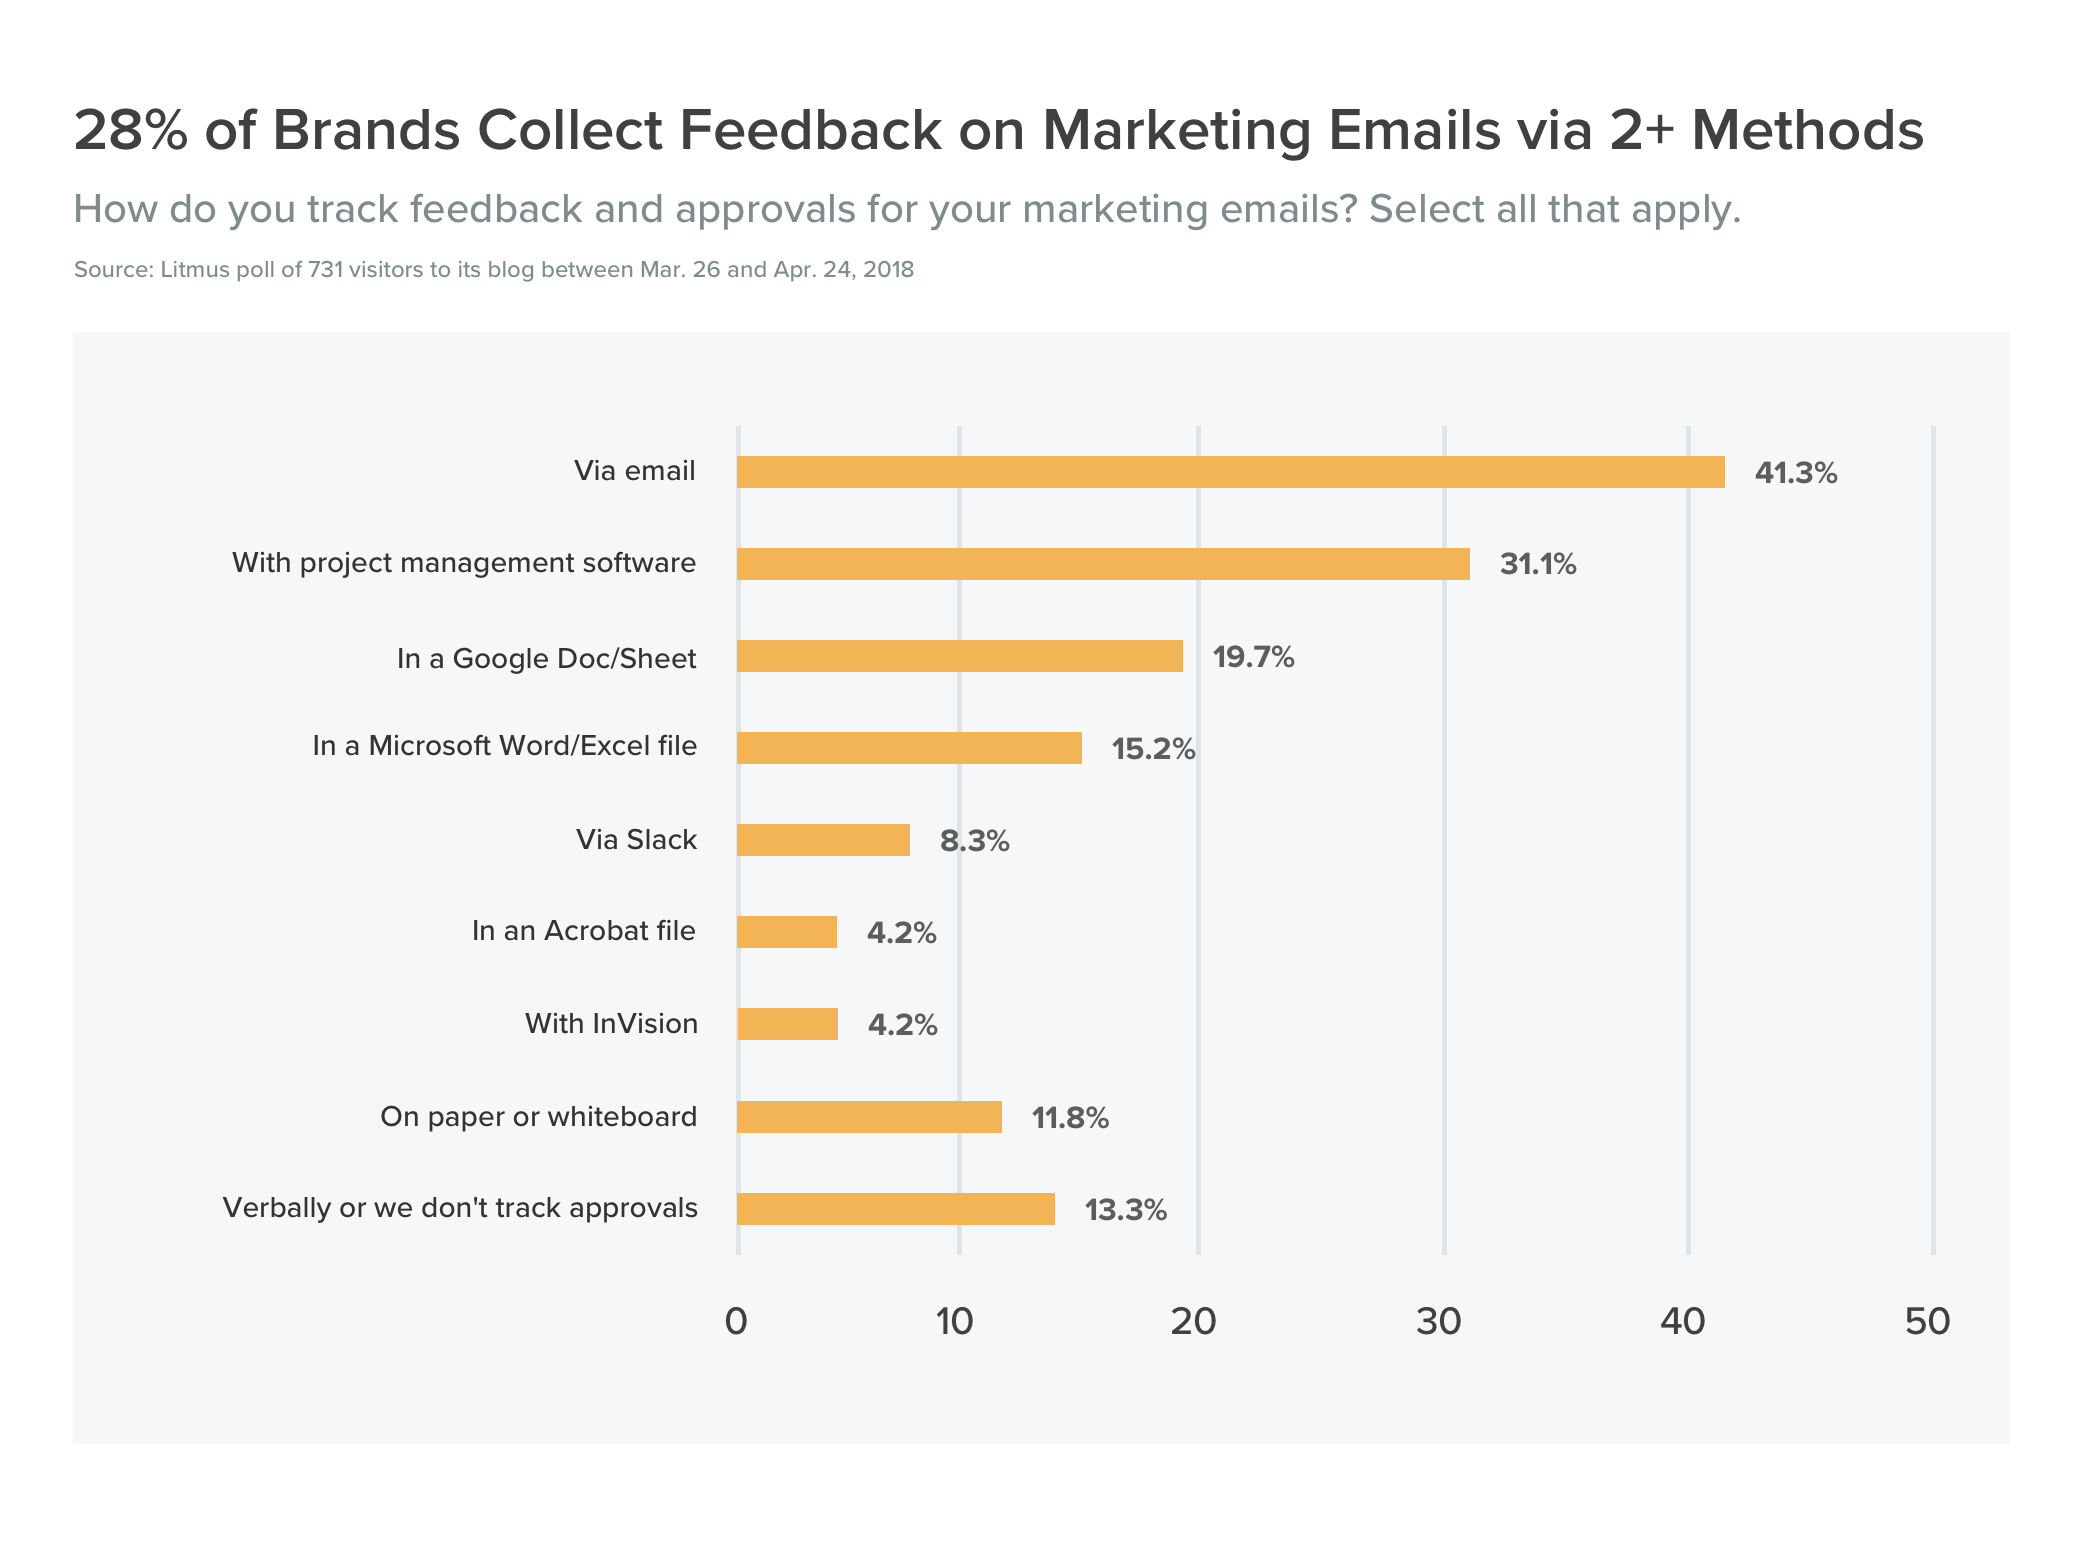 28% of Brands Collect Feedback on Marketing Emails via 2 or More Methods